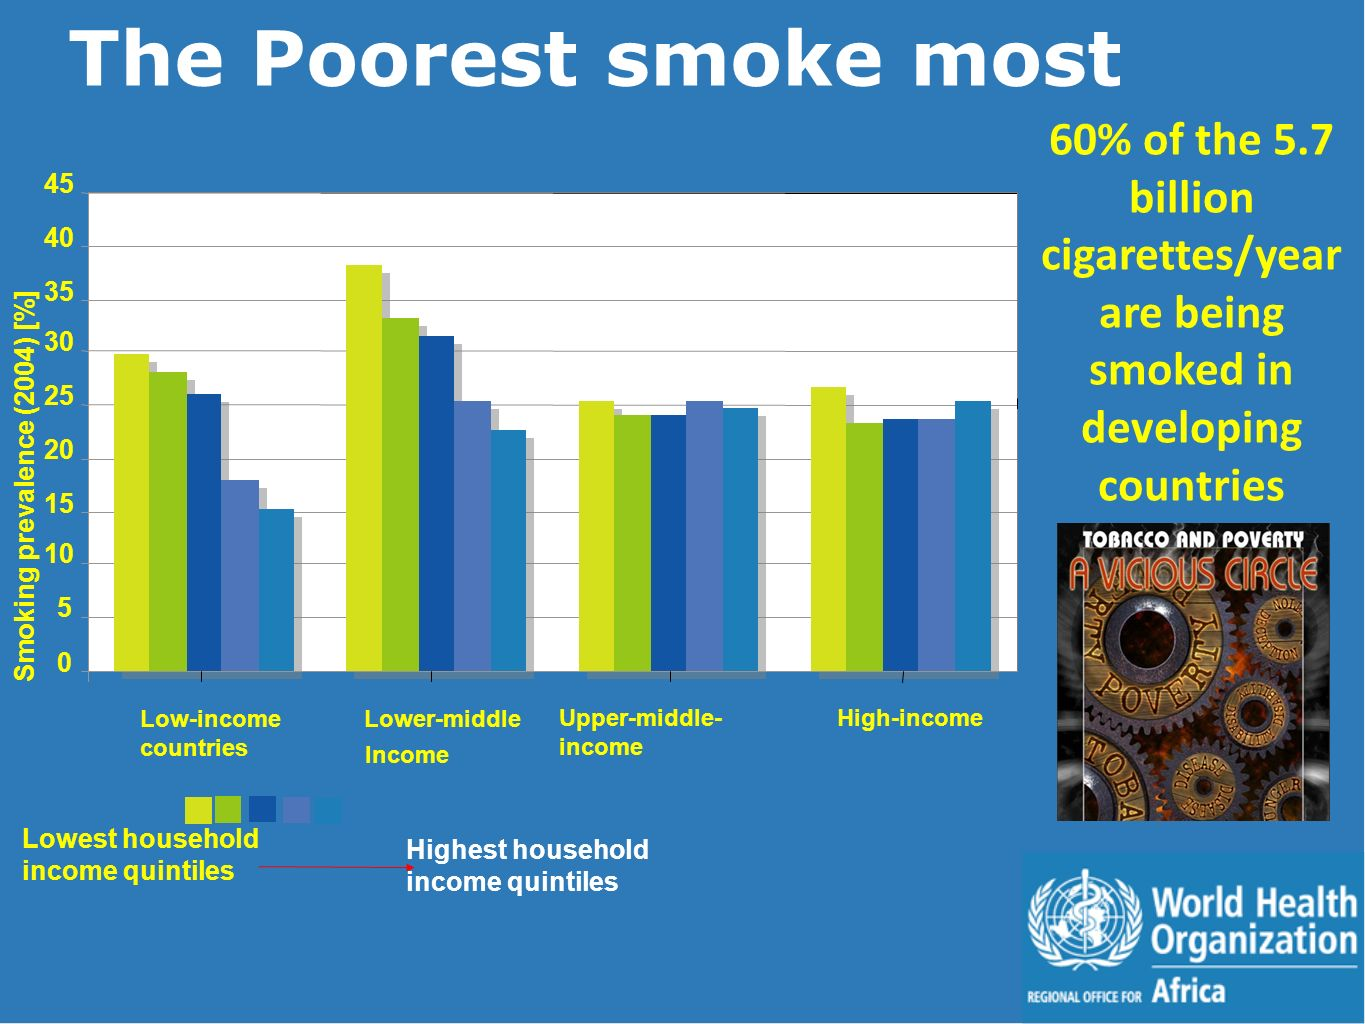 0 5 10 15 20 25 30 35 40 45 Low-income countries Lower-middle Income Upper-middle- income High-income Smoking prevalence (2004) [%] Lowest household income quintiles Highest household income quintiles The Poorest smoke most 60% of the 5.7 billion cigarettes/year are being smoked in developing countries